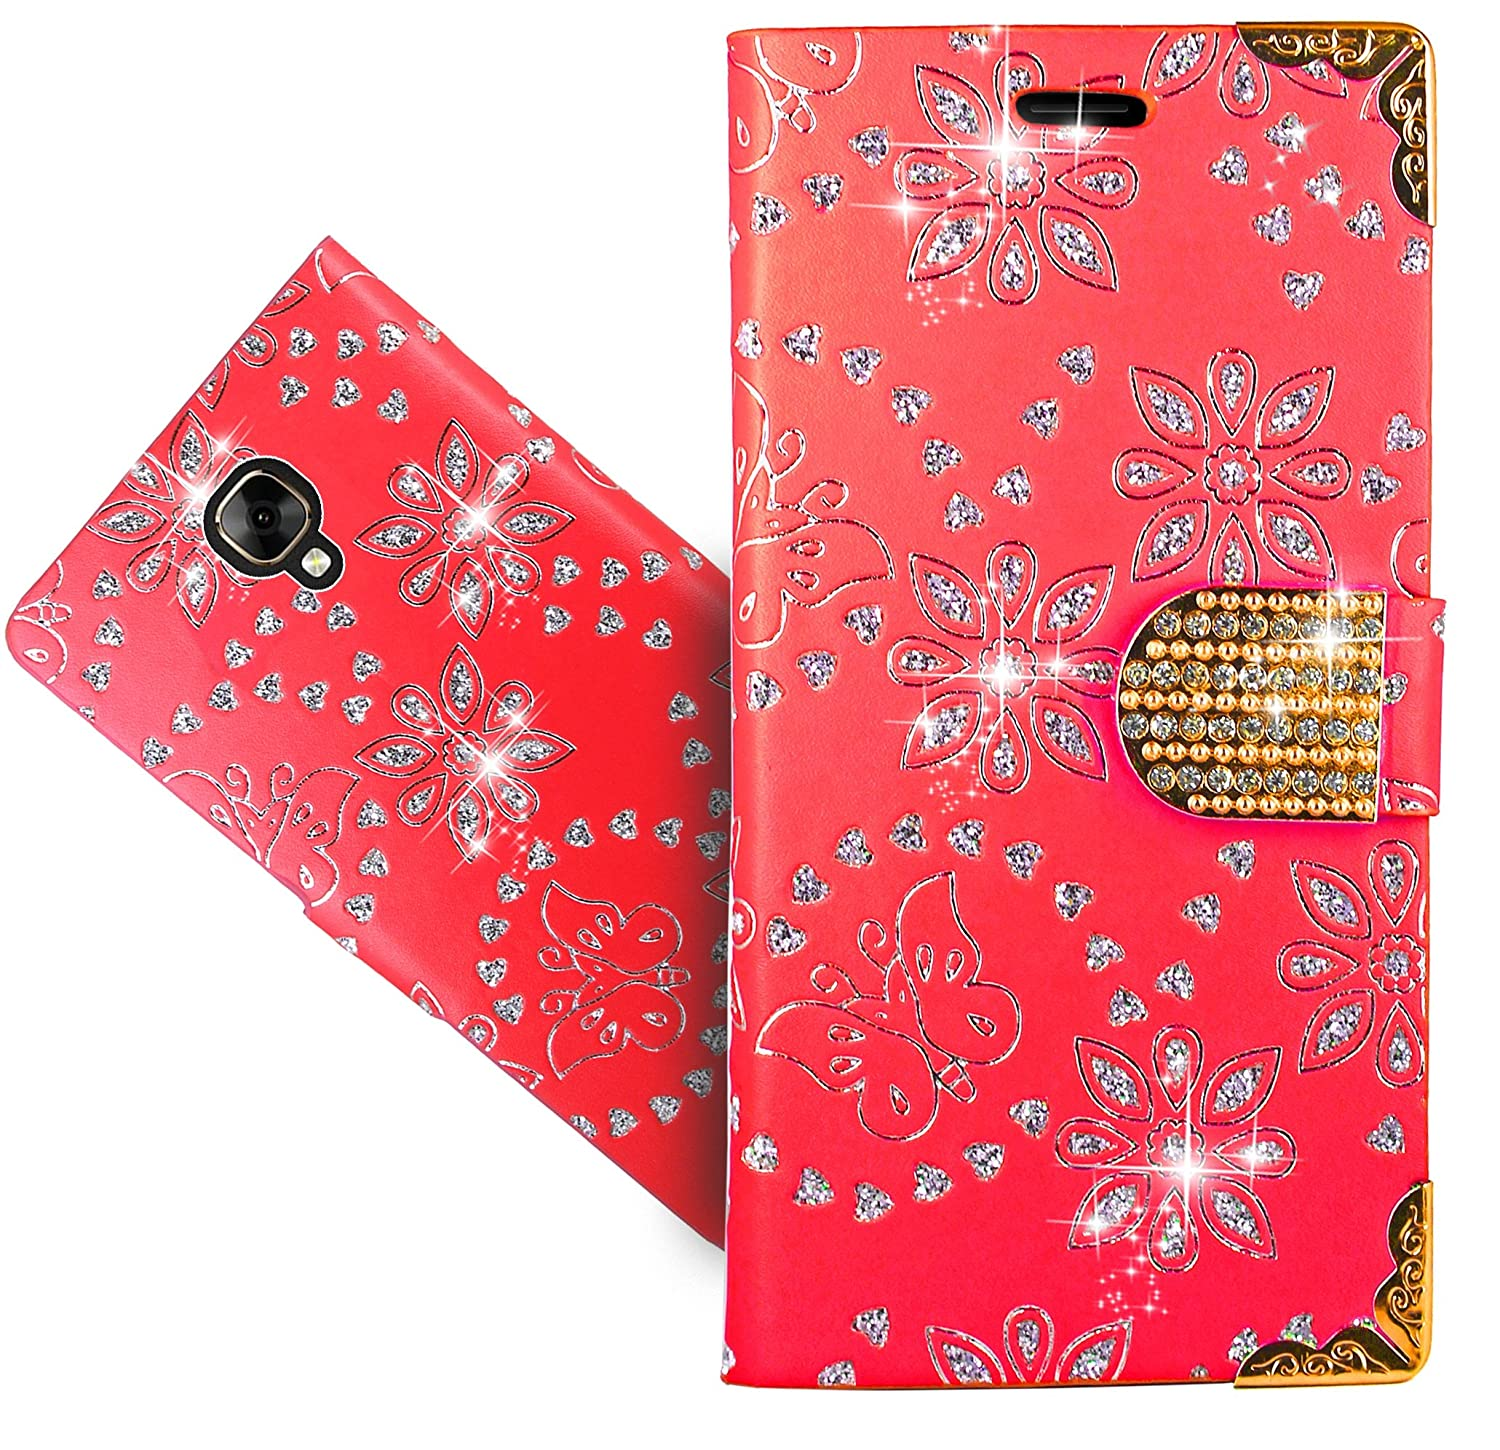 Amazon.com: Doogee X10 Case, FoneExpert Bling Diamond ...